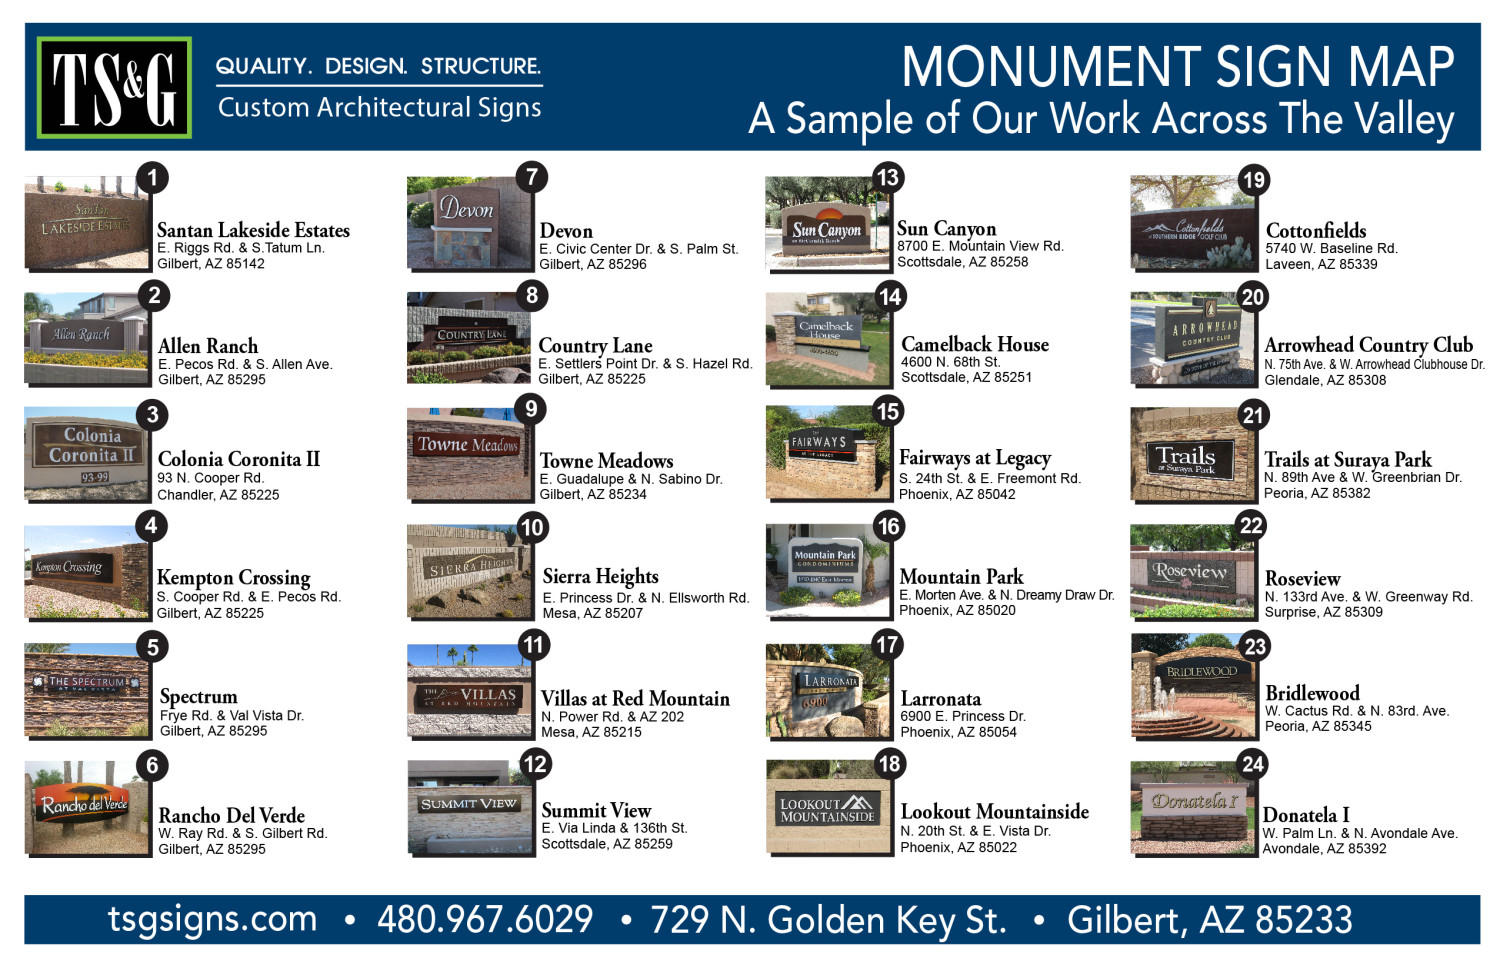 TSG HOA Monument Map 2-21-18-02